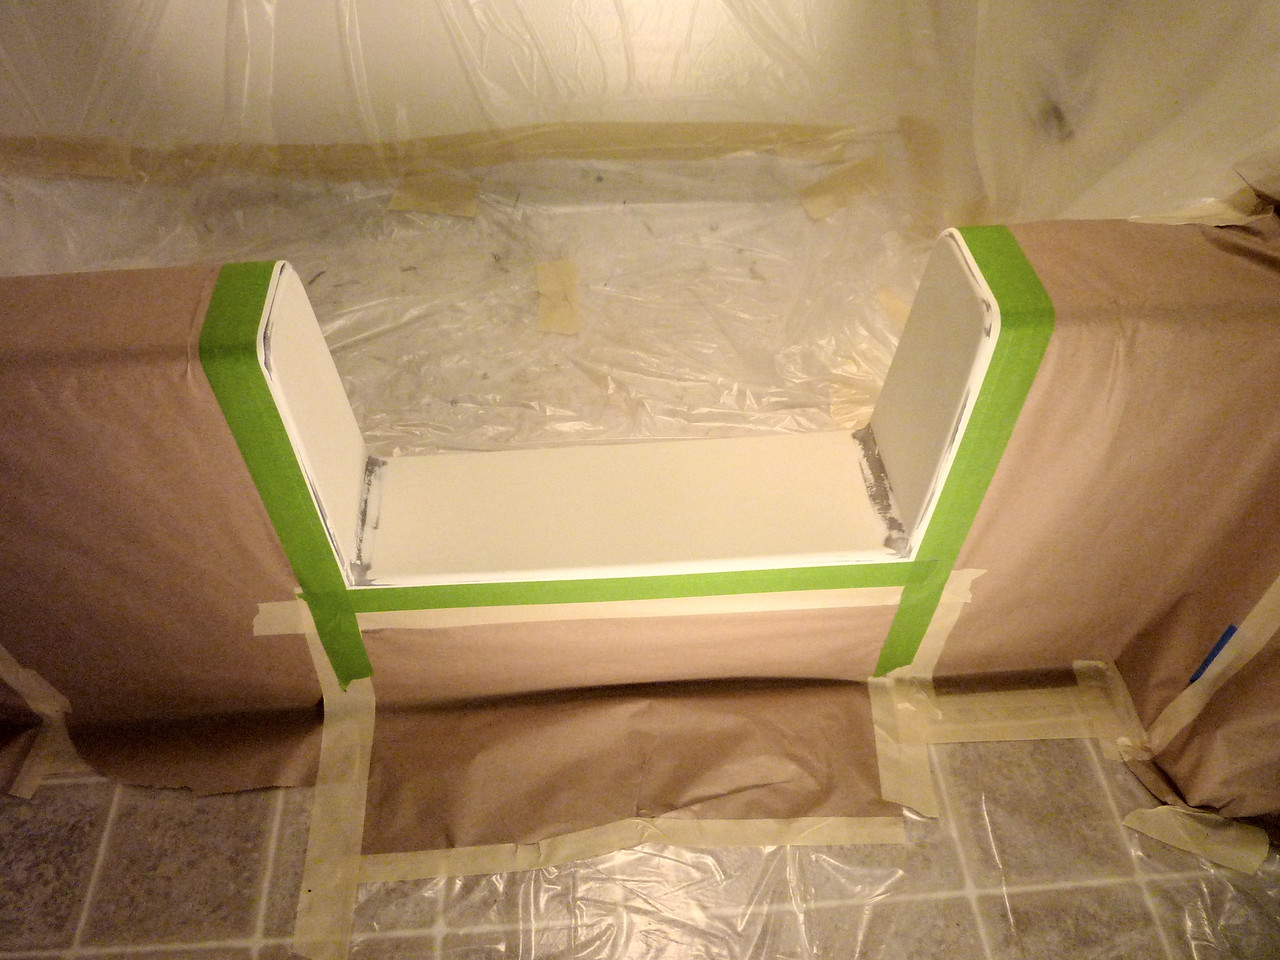 Tub area all protected against over-spray.